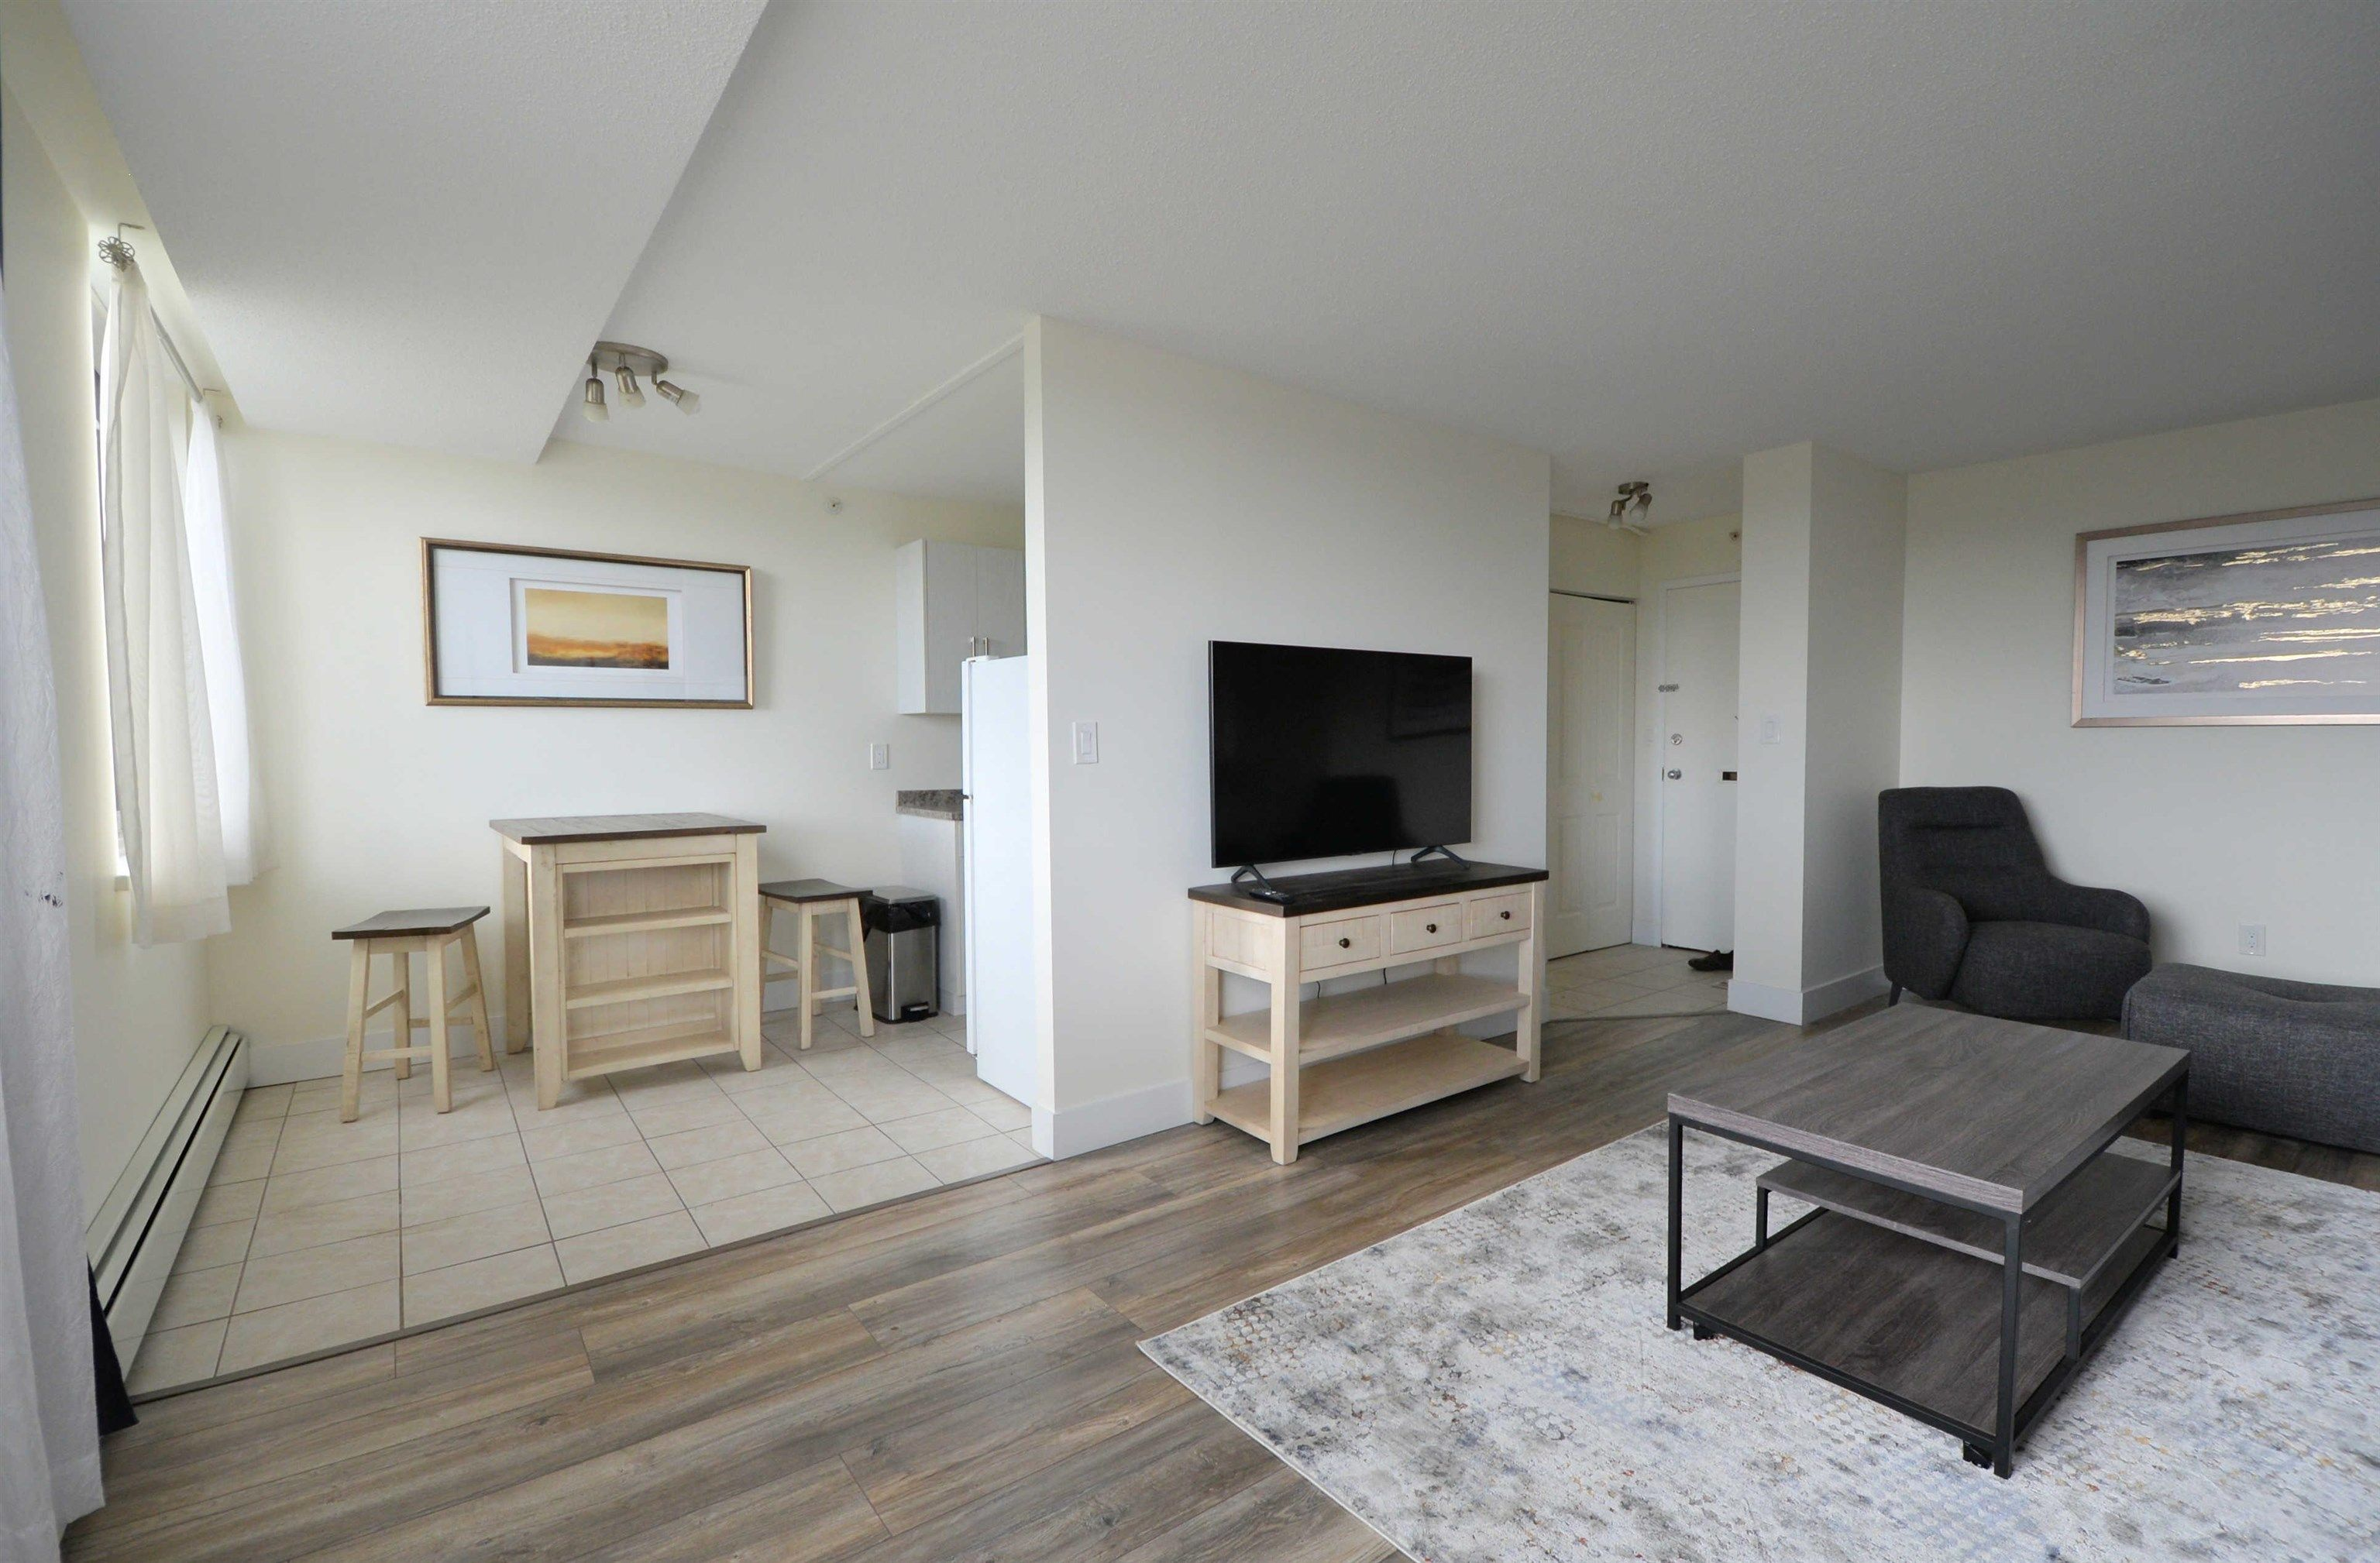 """Main Photo: 705 1501 QUEENSWAY Street in Prince George: Connaught Condo for sale in """"CONNAUGHT HILL RESIDENCES"""" (PG City Central (Zone 72))  : MLS®# R2610753"""